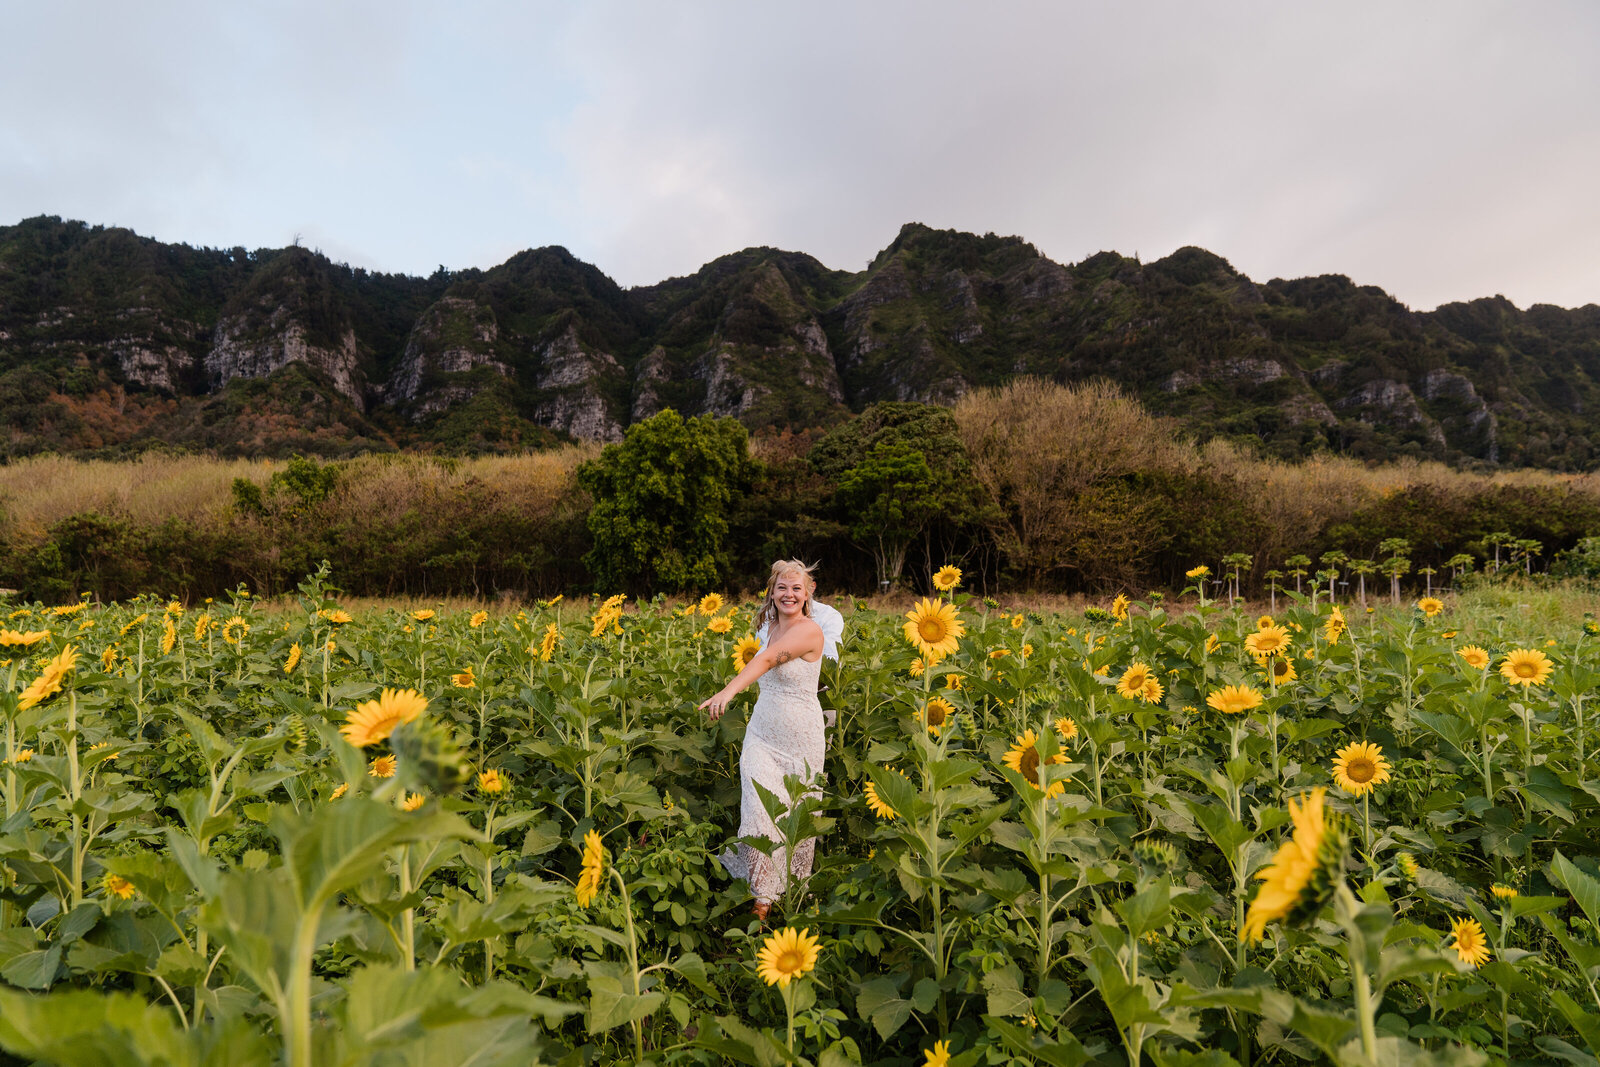 waimanalo-country-farms-sunflower-field-elopement-sydney-and-ryan-photography-112 copy